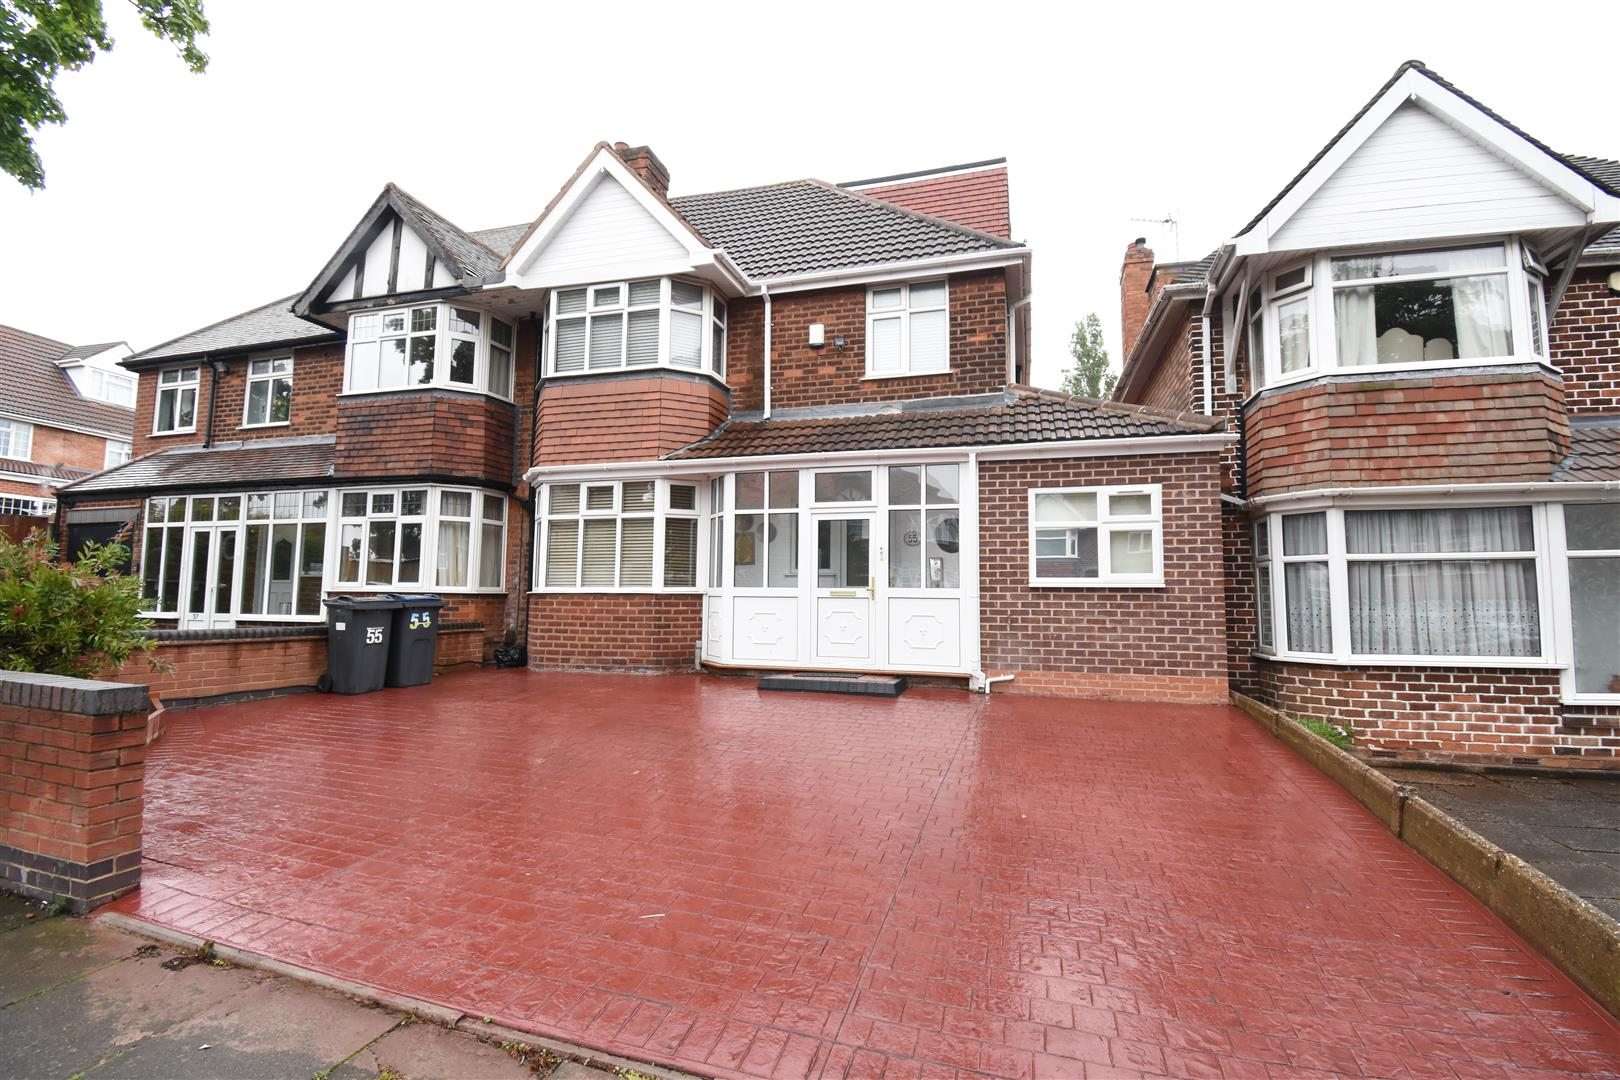 4 bed house for sale in Radstock Avenue, Hodge Hill, Birmingham, B36